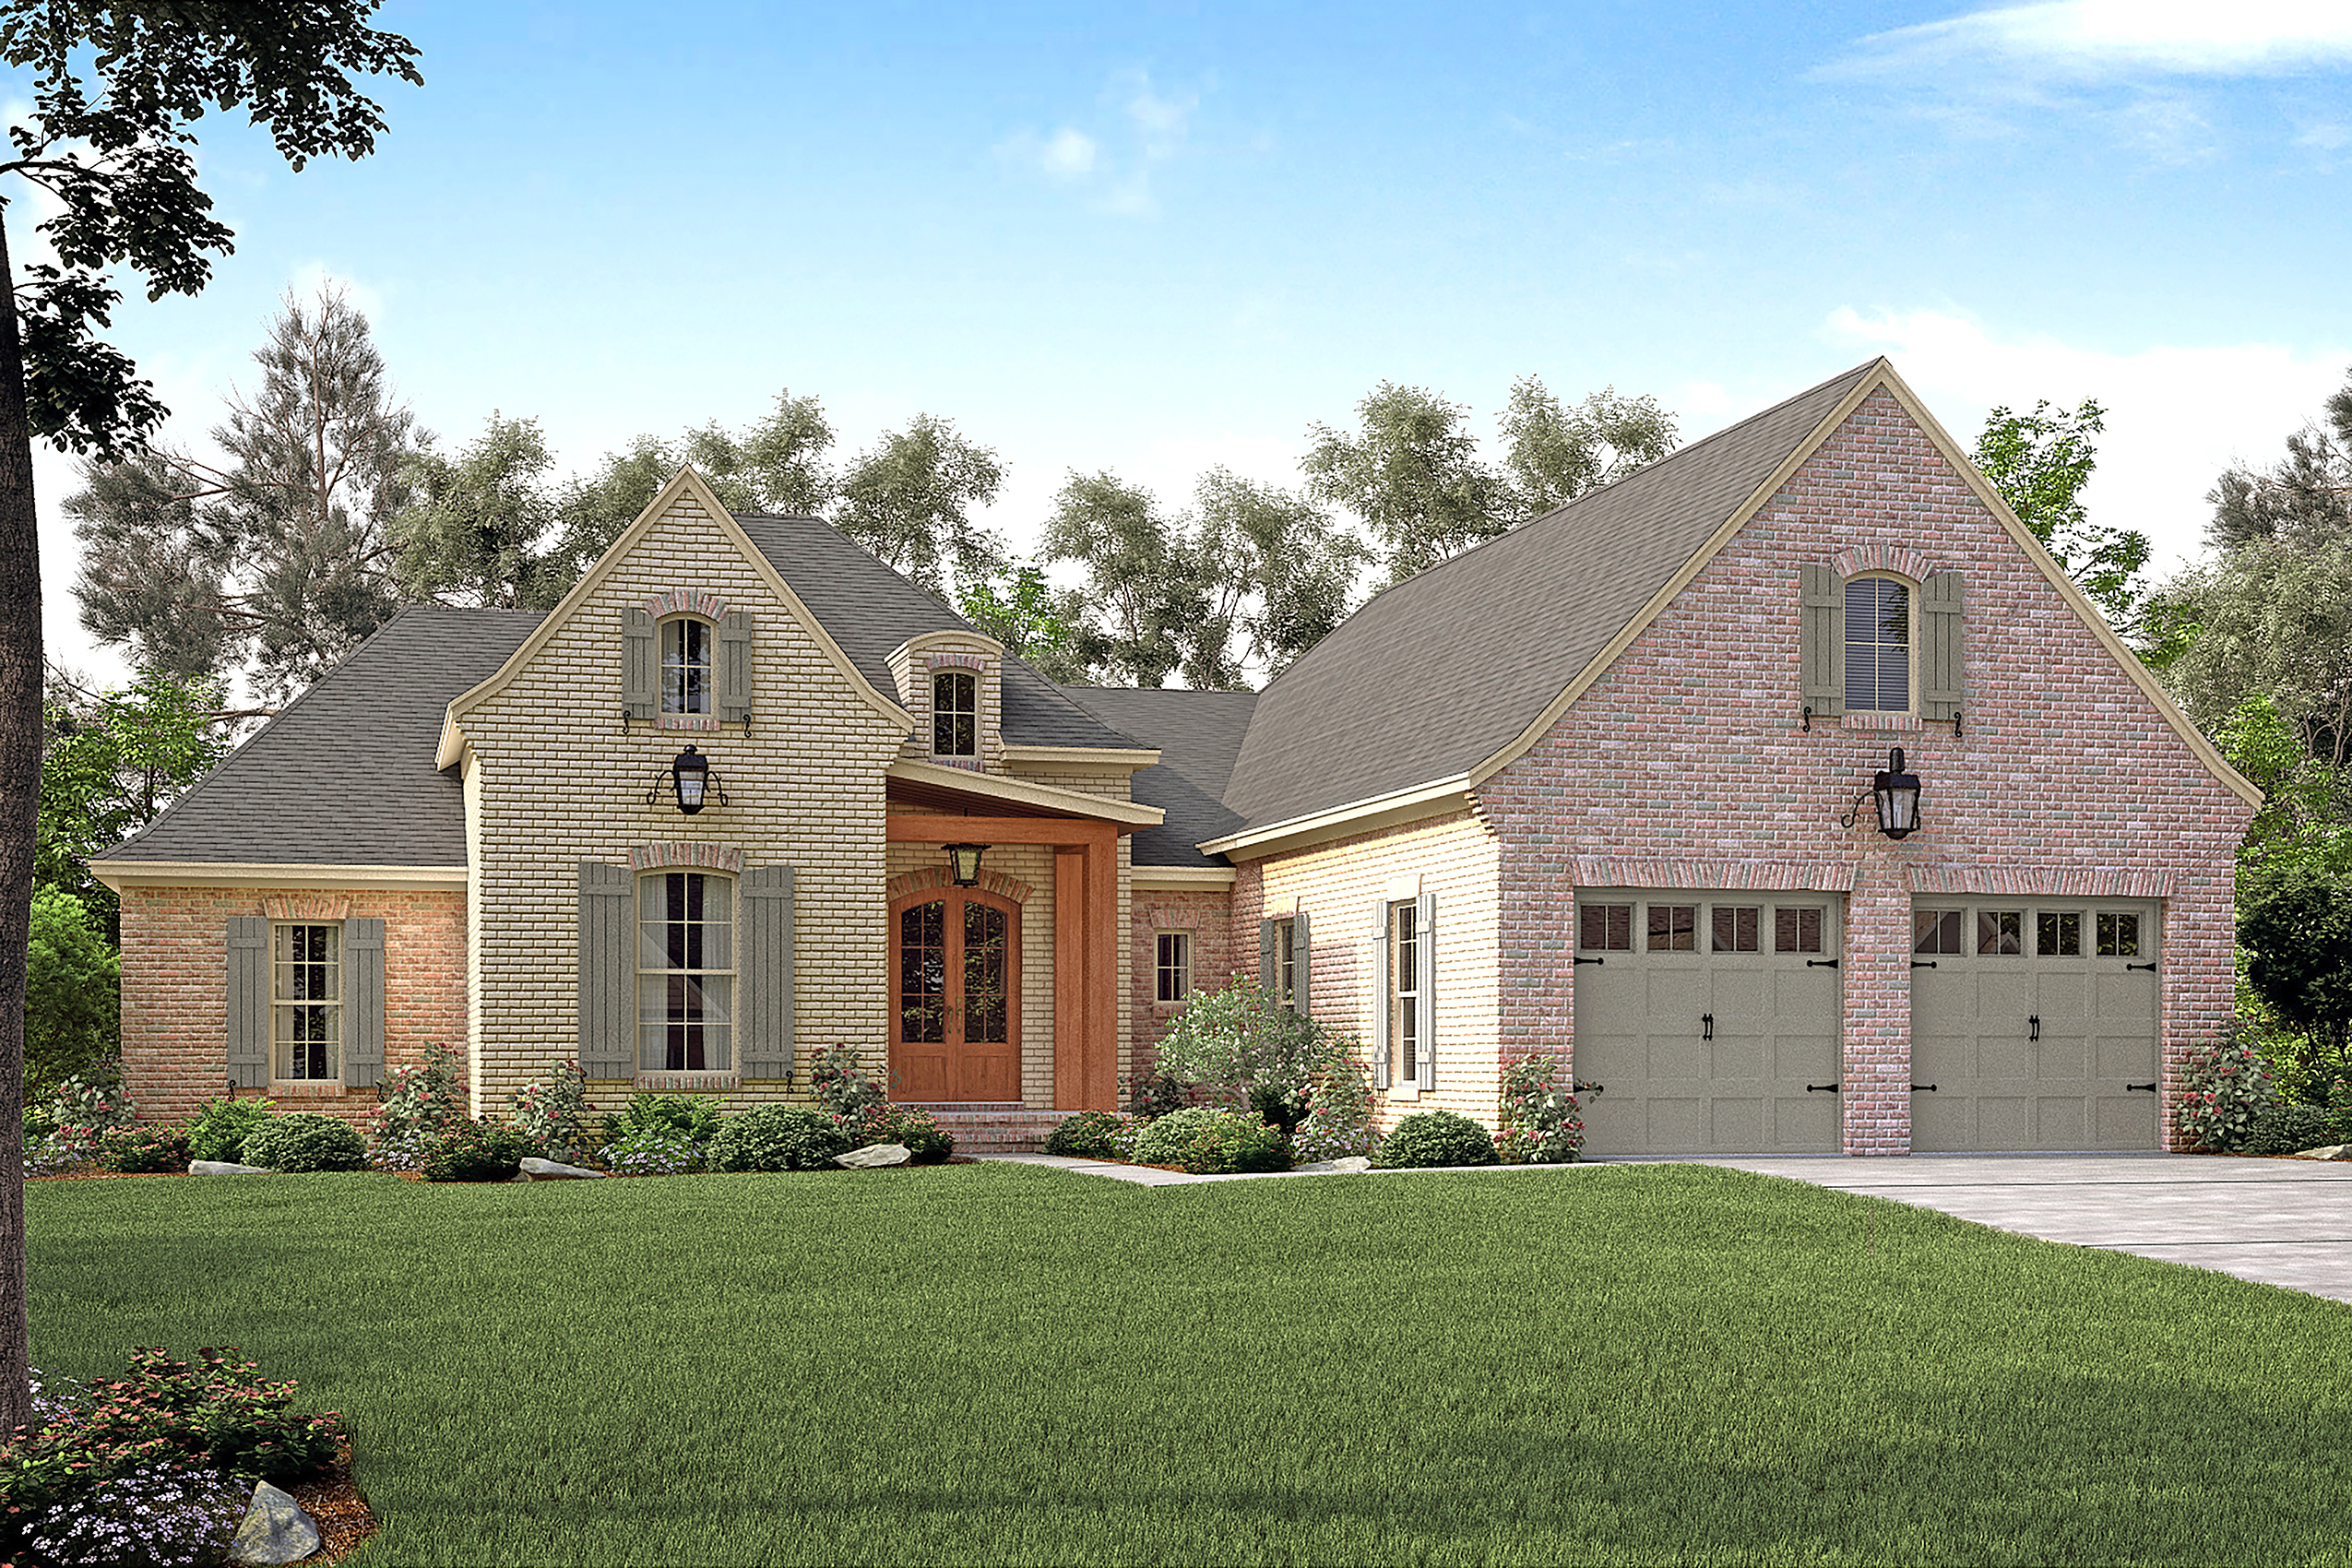 French House Plan #142-1149: 3 Bedrm, 2217 Sq Ft Home Plan